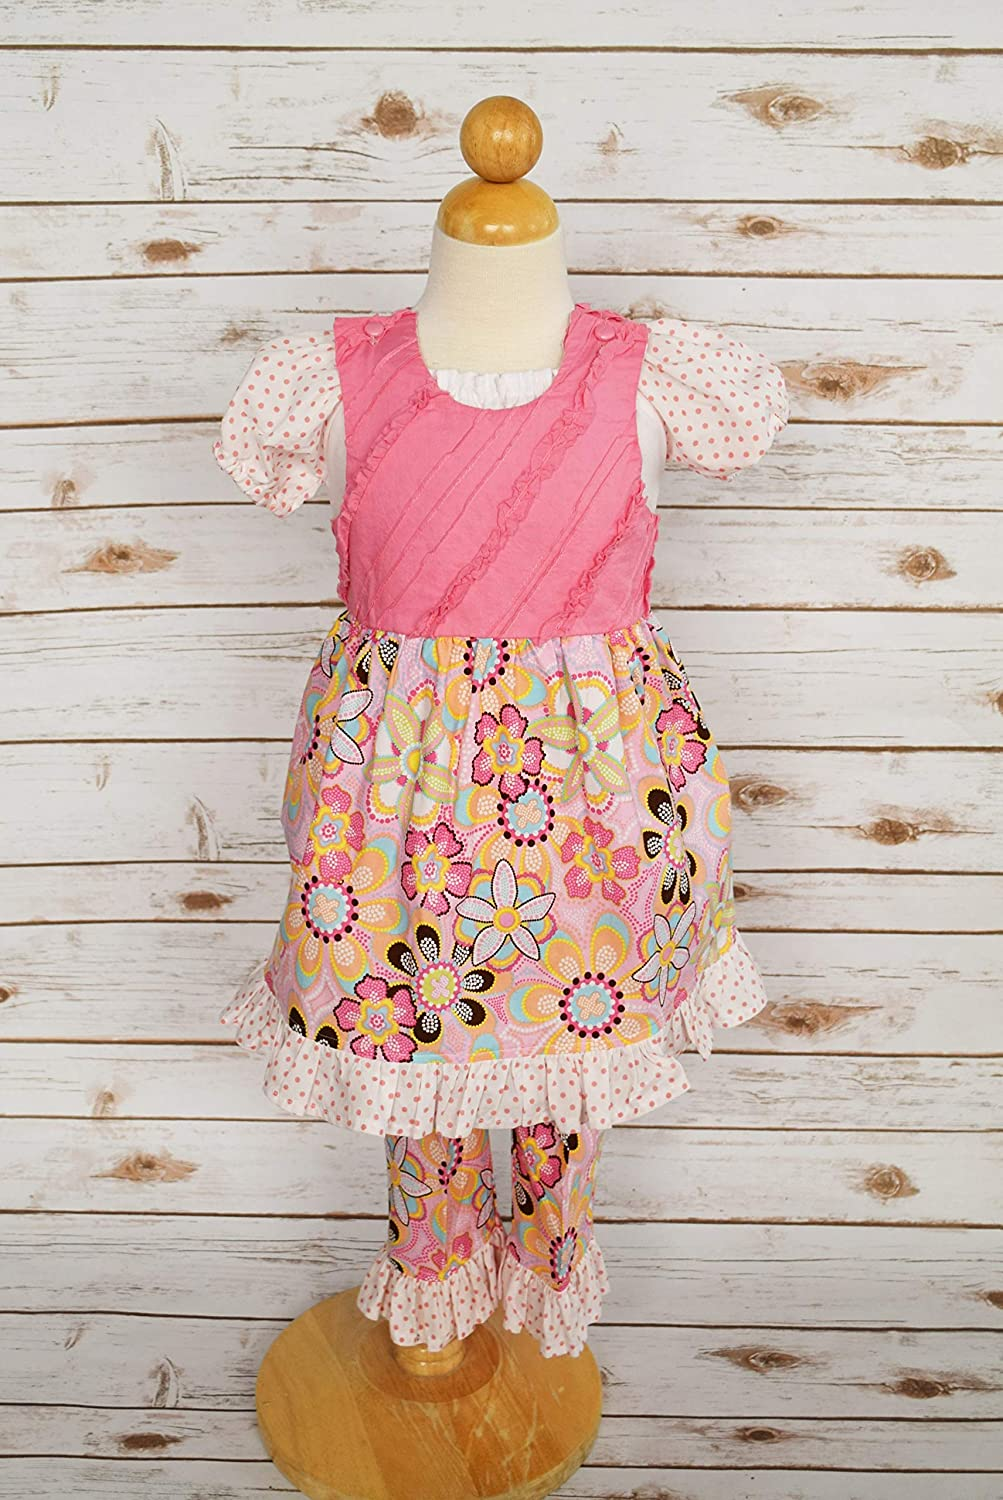 6171ab0396b03 Amazon.com: Girls boutique outfit, Girls Boutique Dress, Girls ...